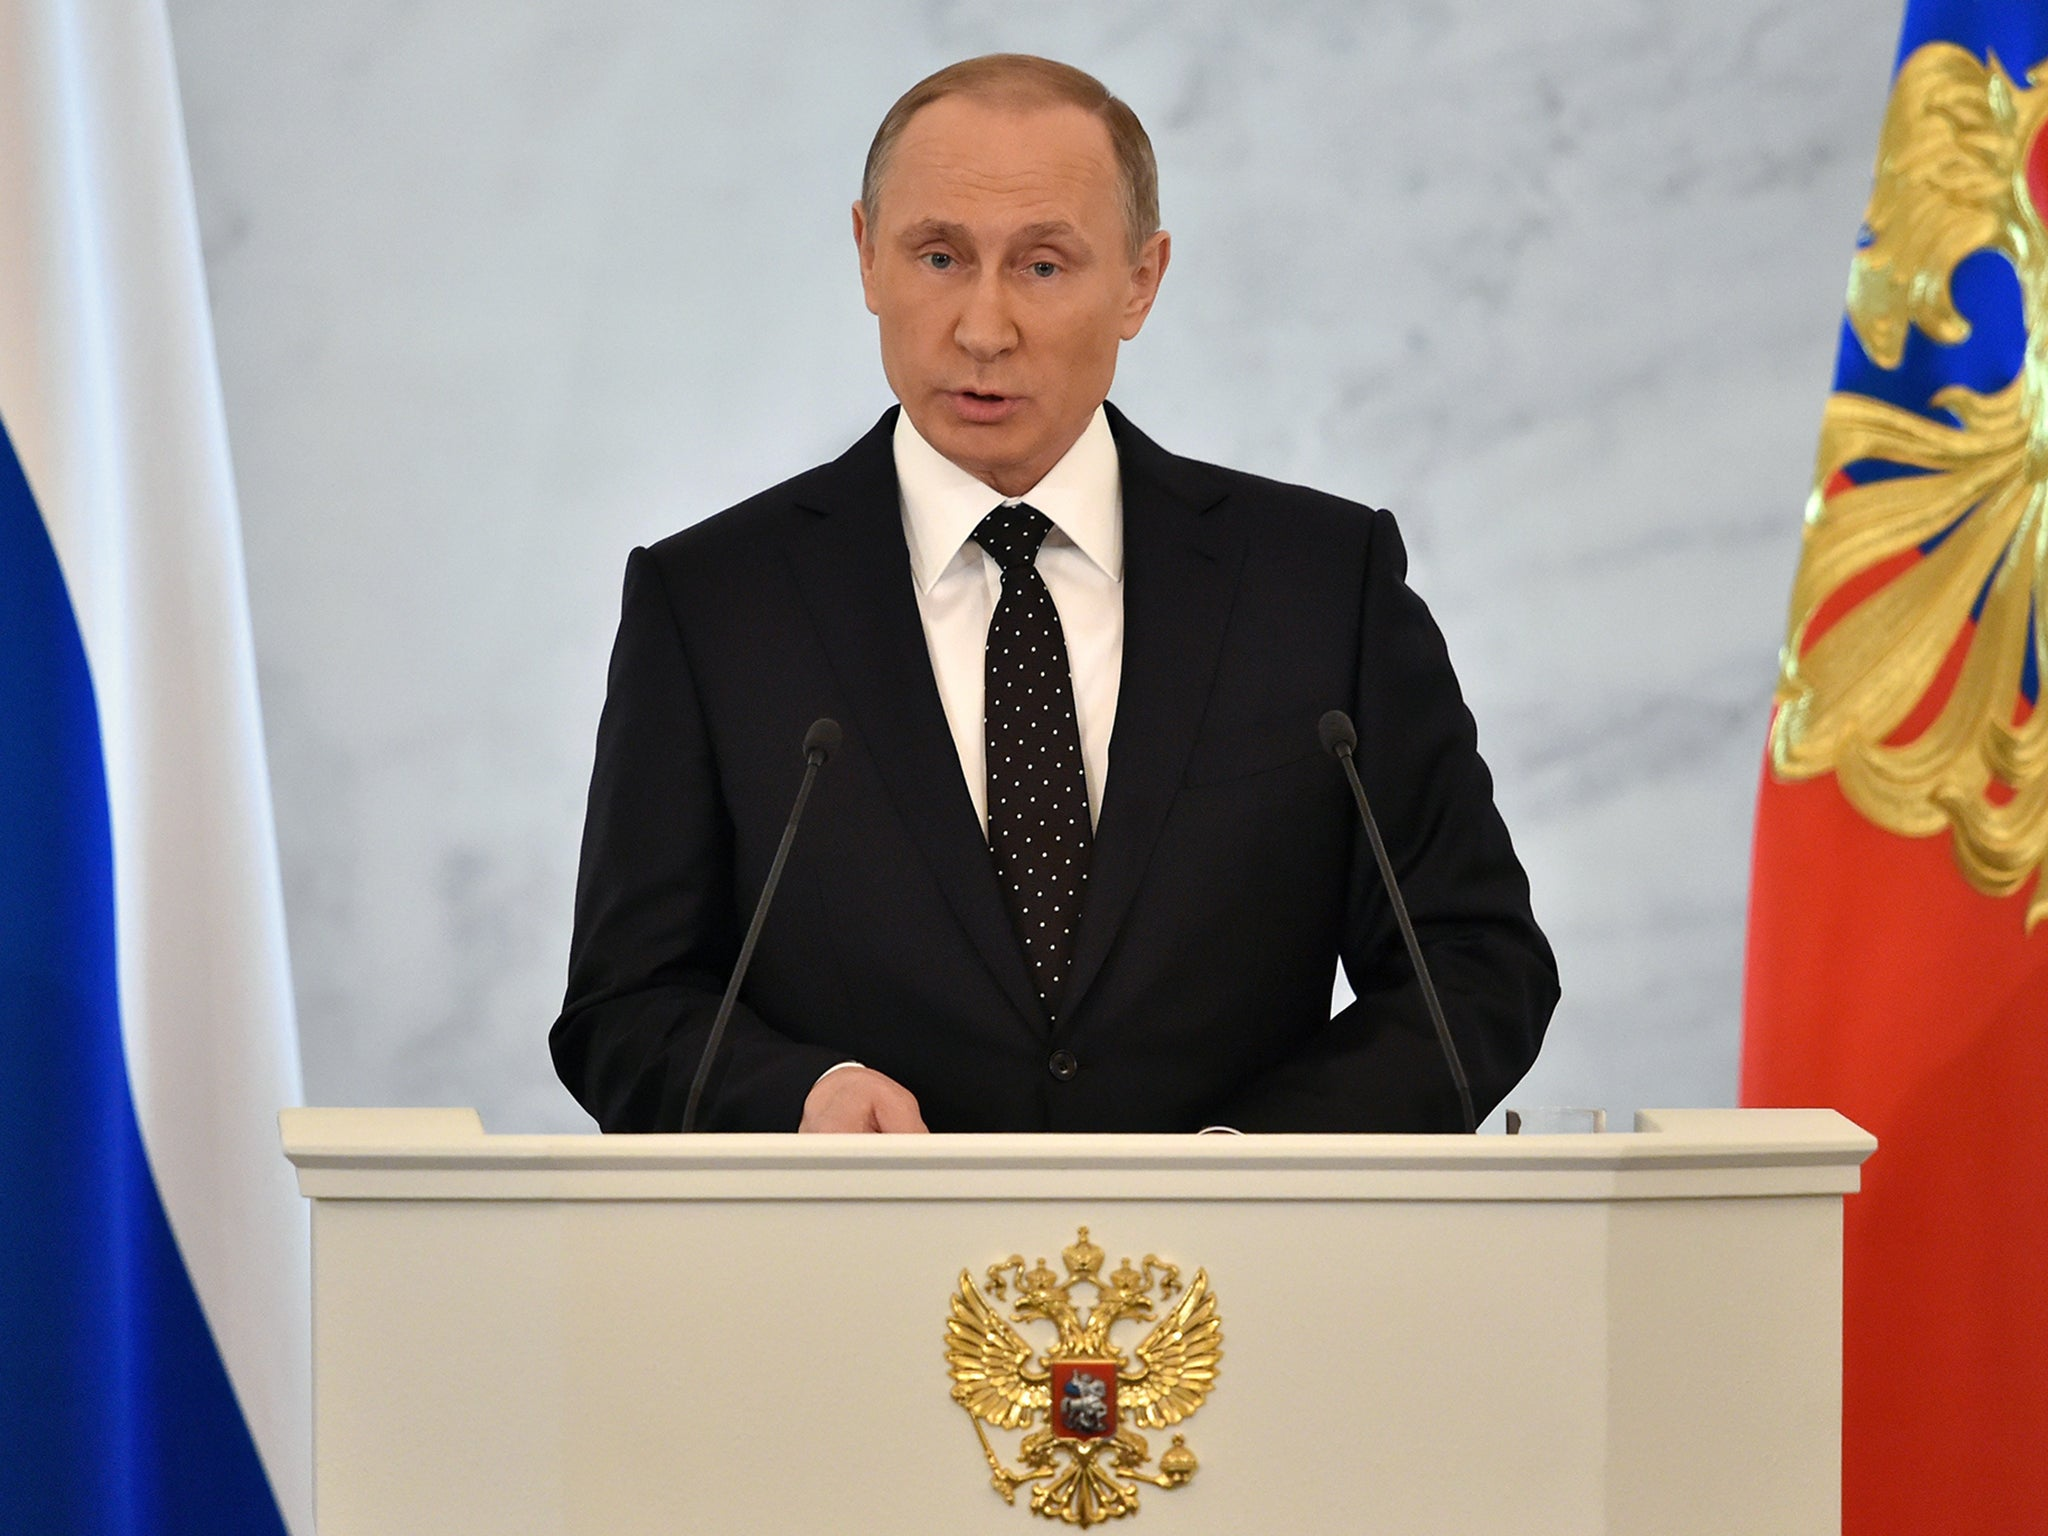 Vladimir Putin just signed a law allowing Russia to ignore international human rights